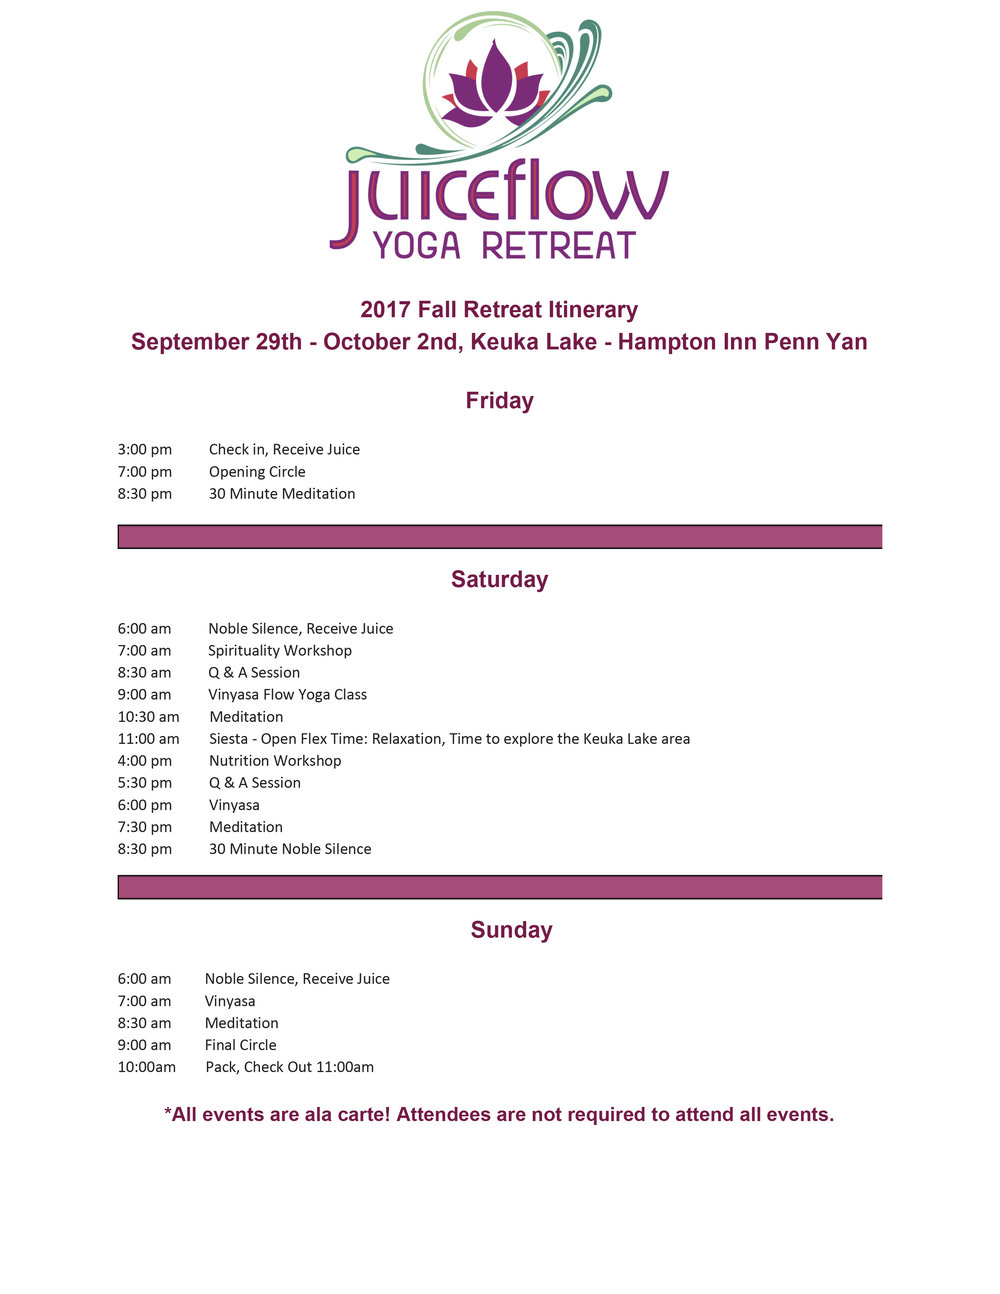 2017-Fall-juiceflow-Yoga-Retreat-Itinerary.jpg